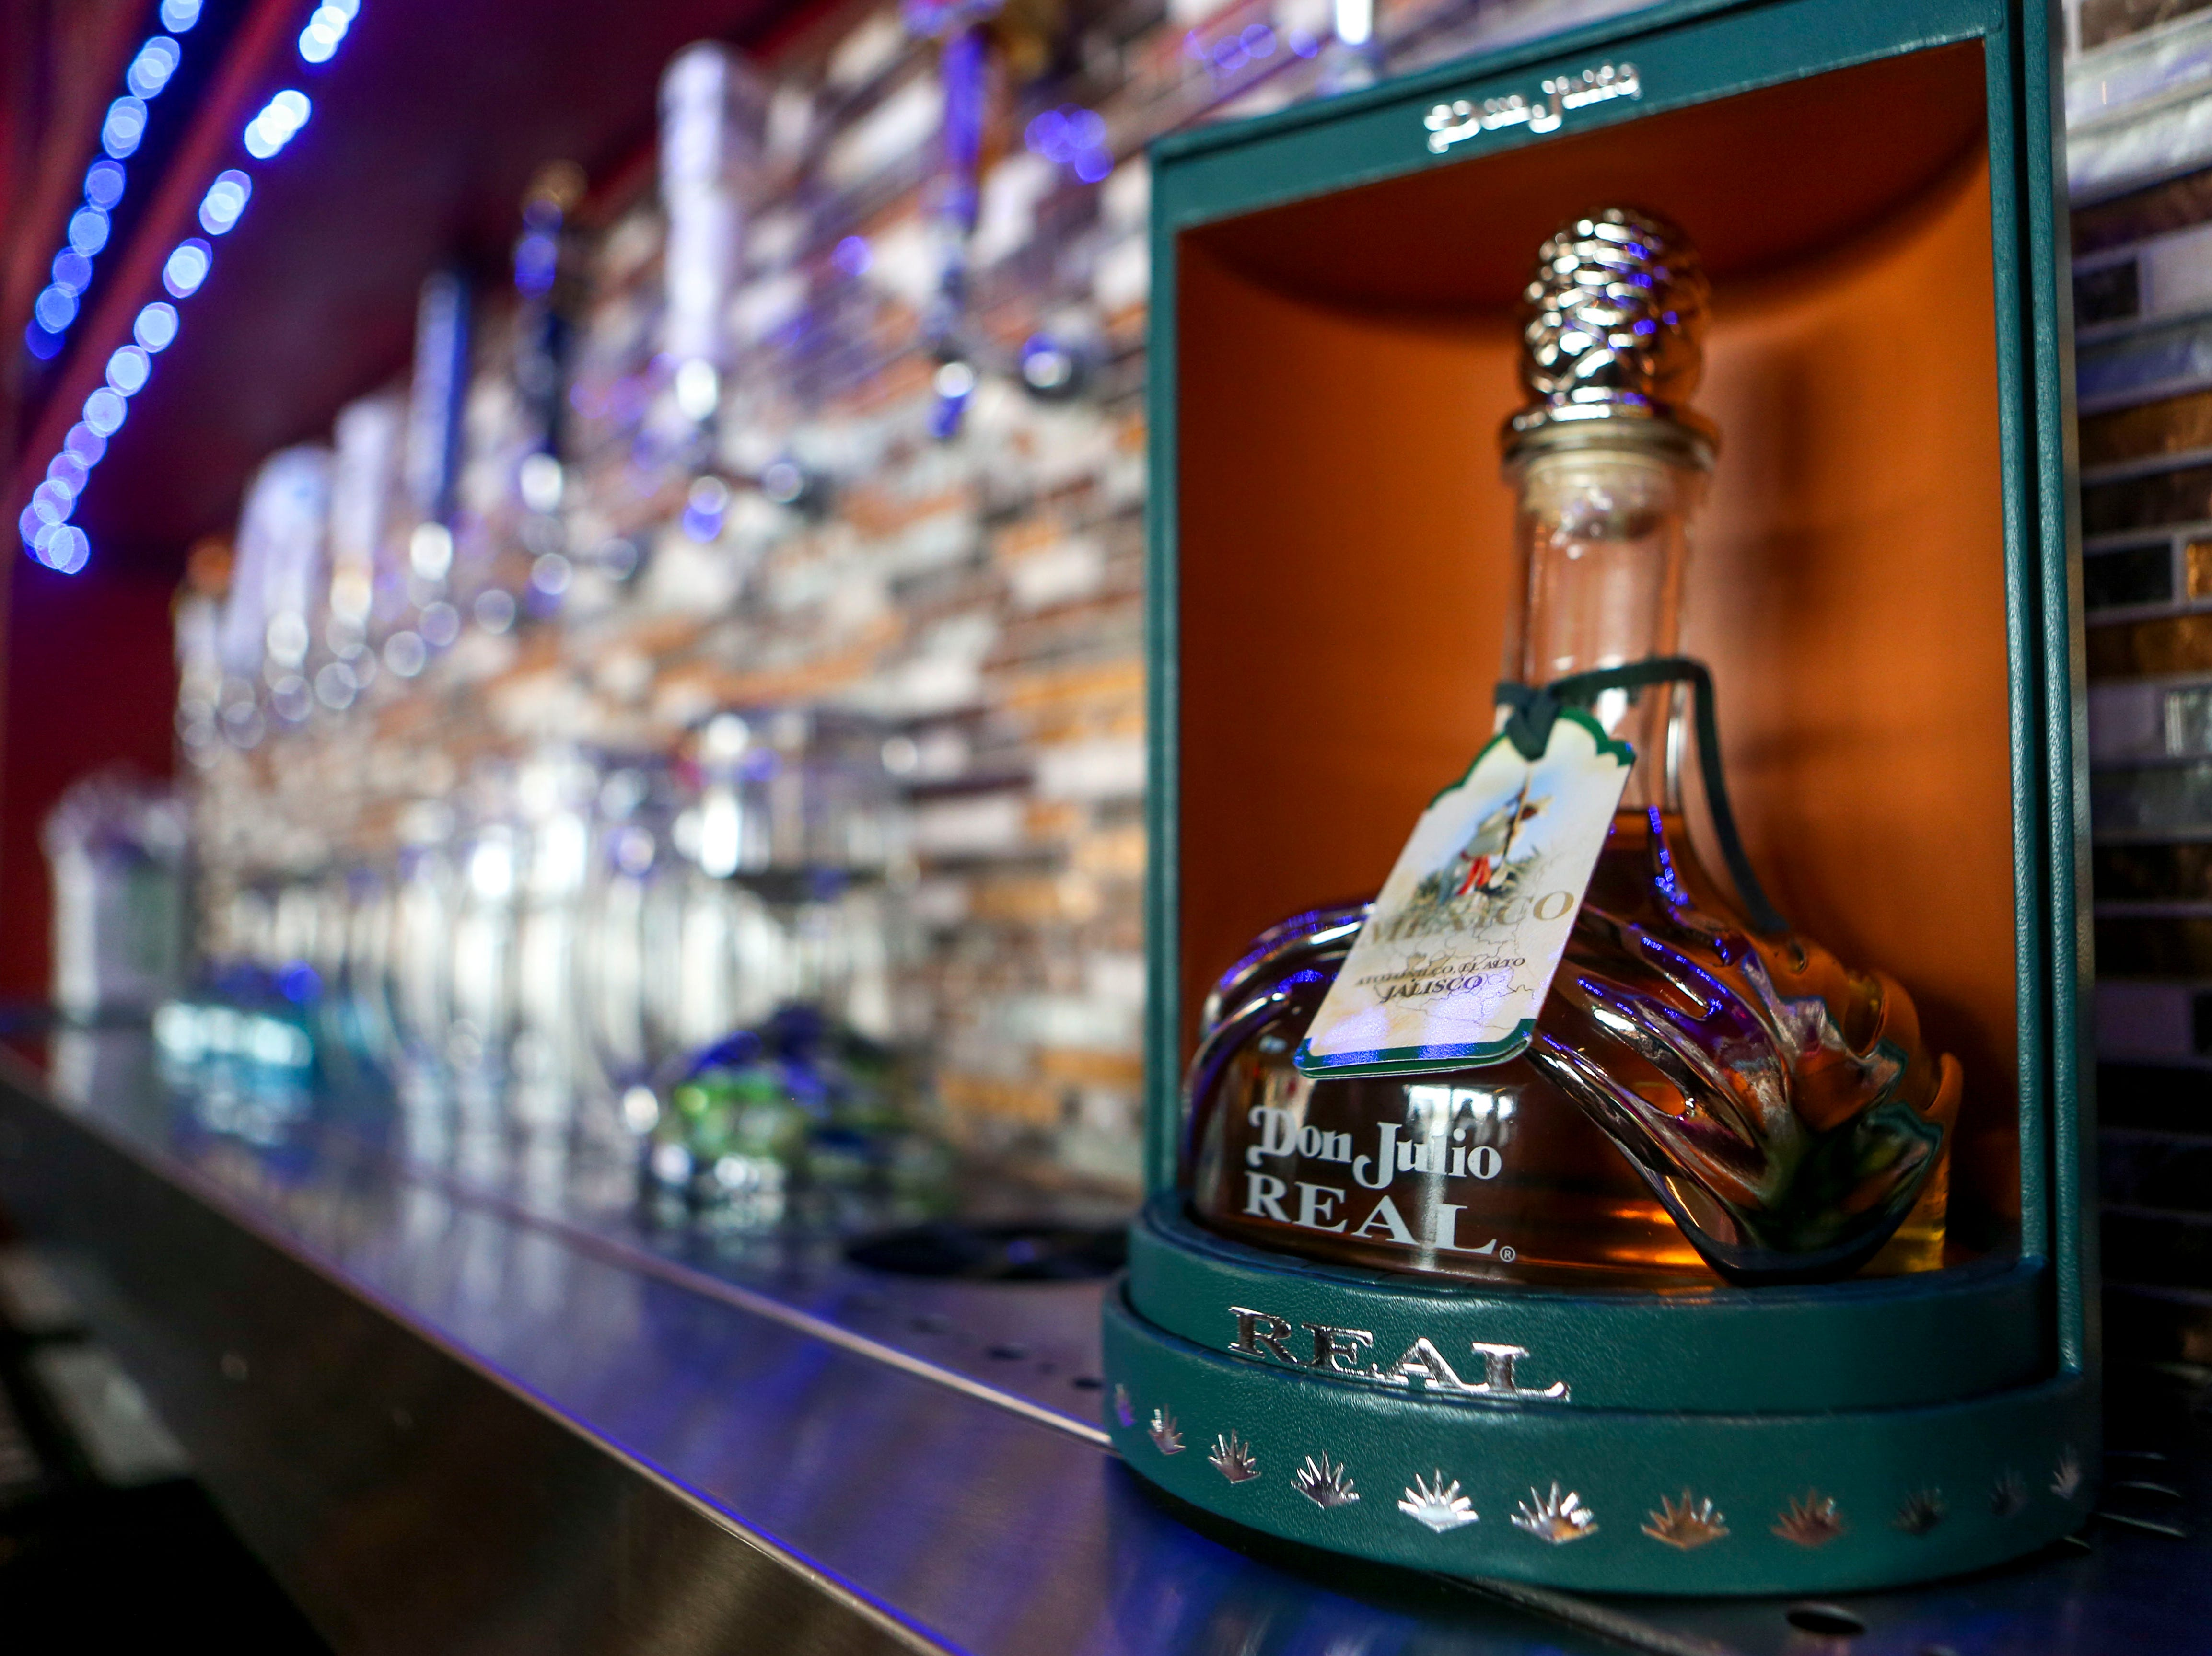 Special top shelf Don Julio tequila is presented behind the bar during the opening day at Te'Kila Mexican Bar & Grill in Jackson, Tenn., on Wednesday, Dec. 19, 2018.